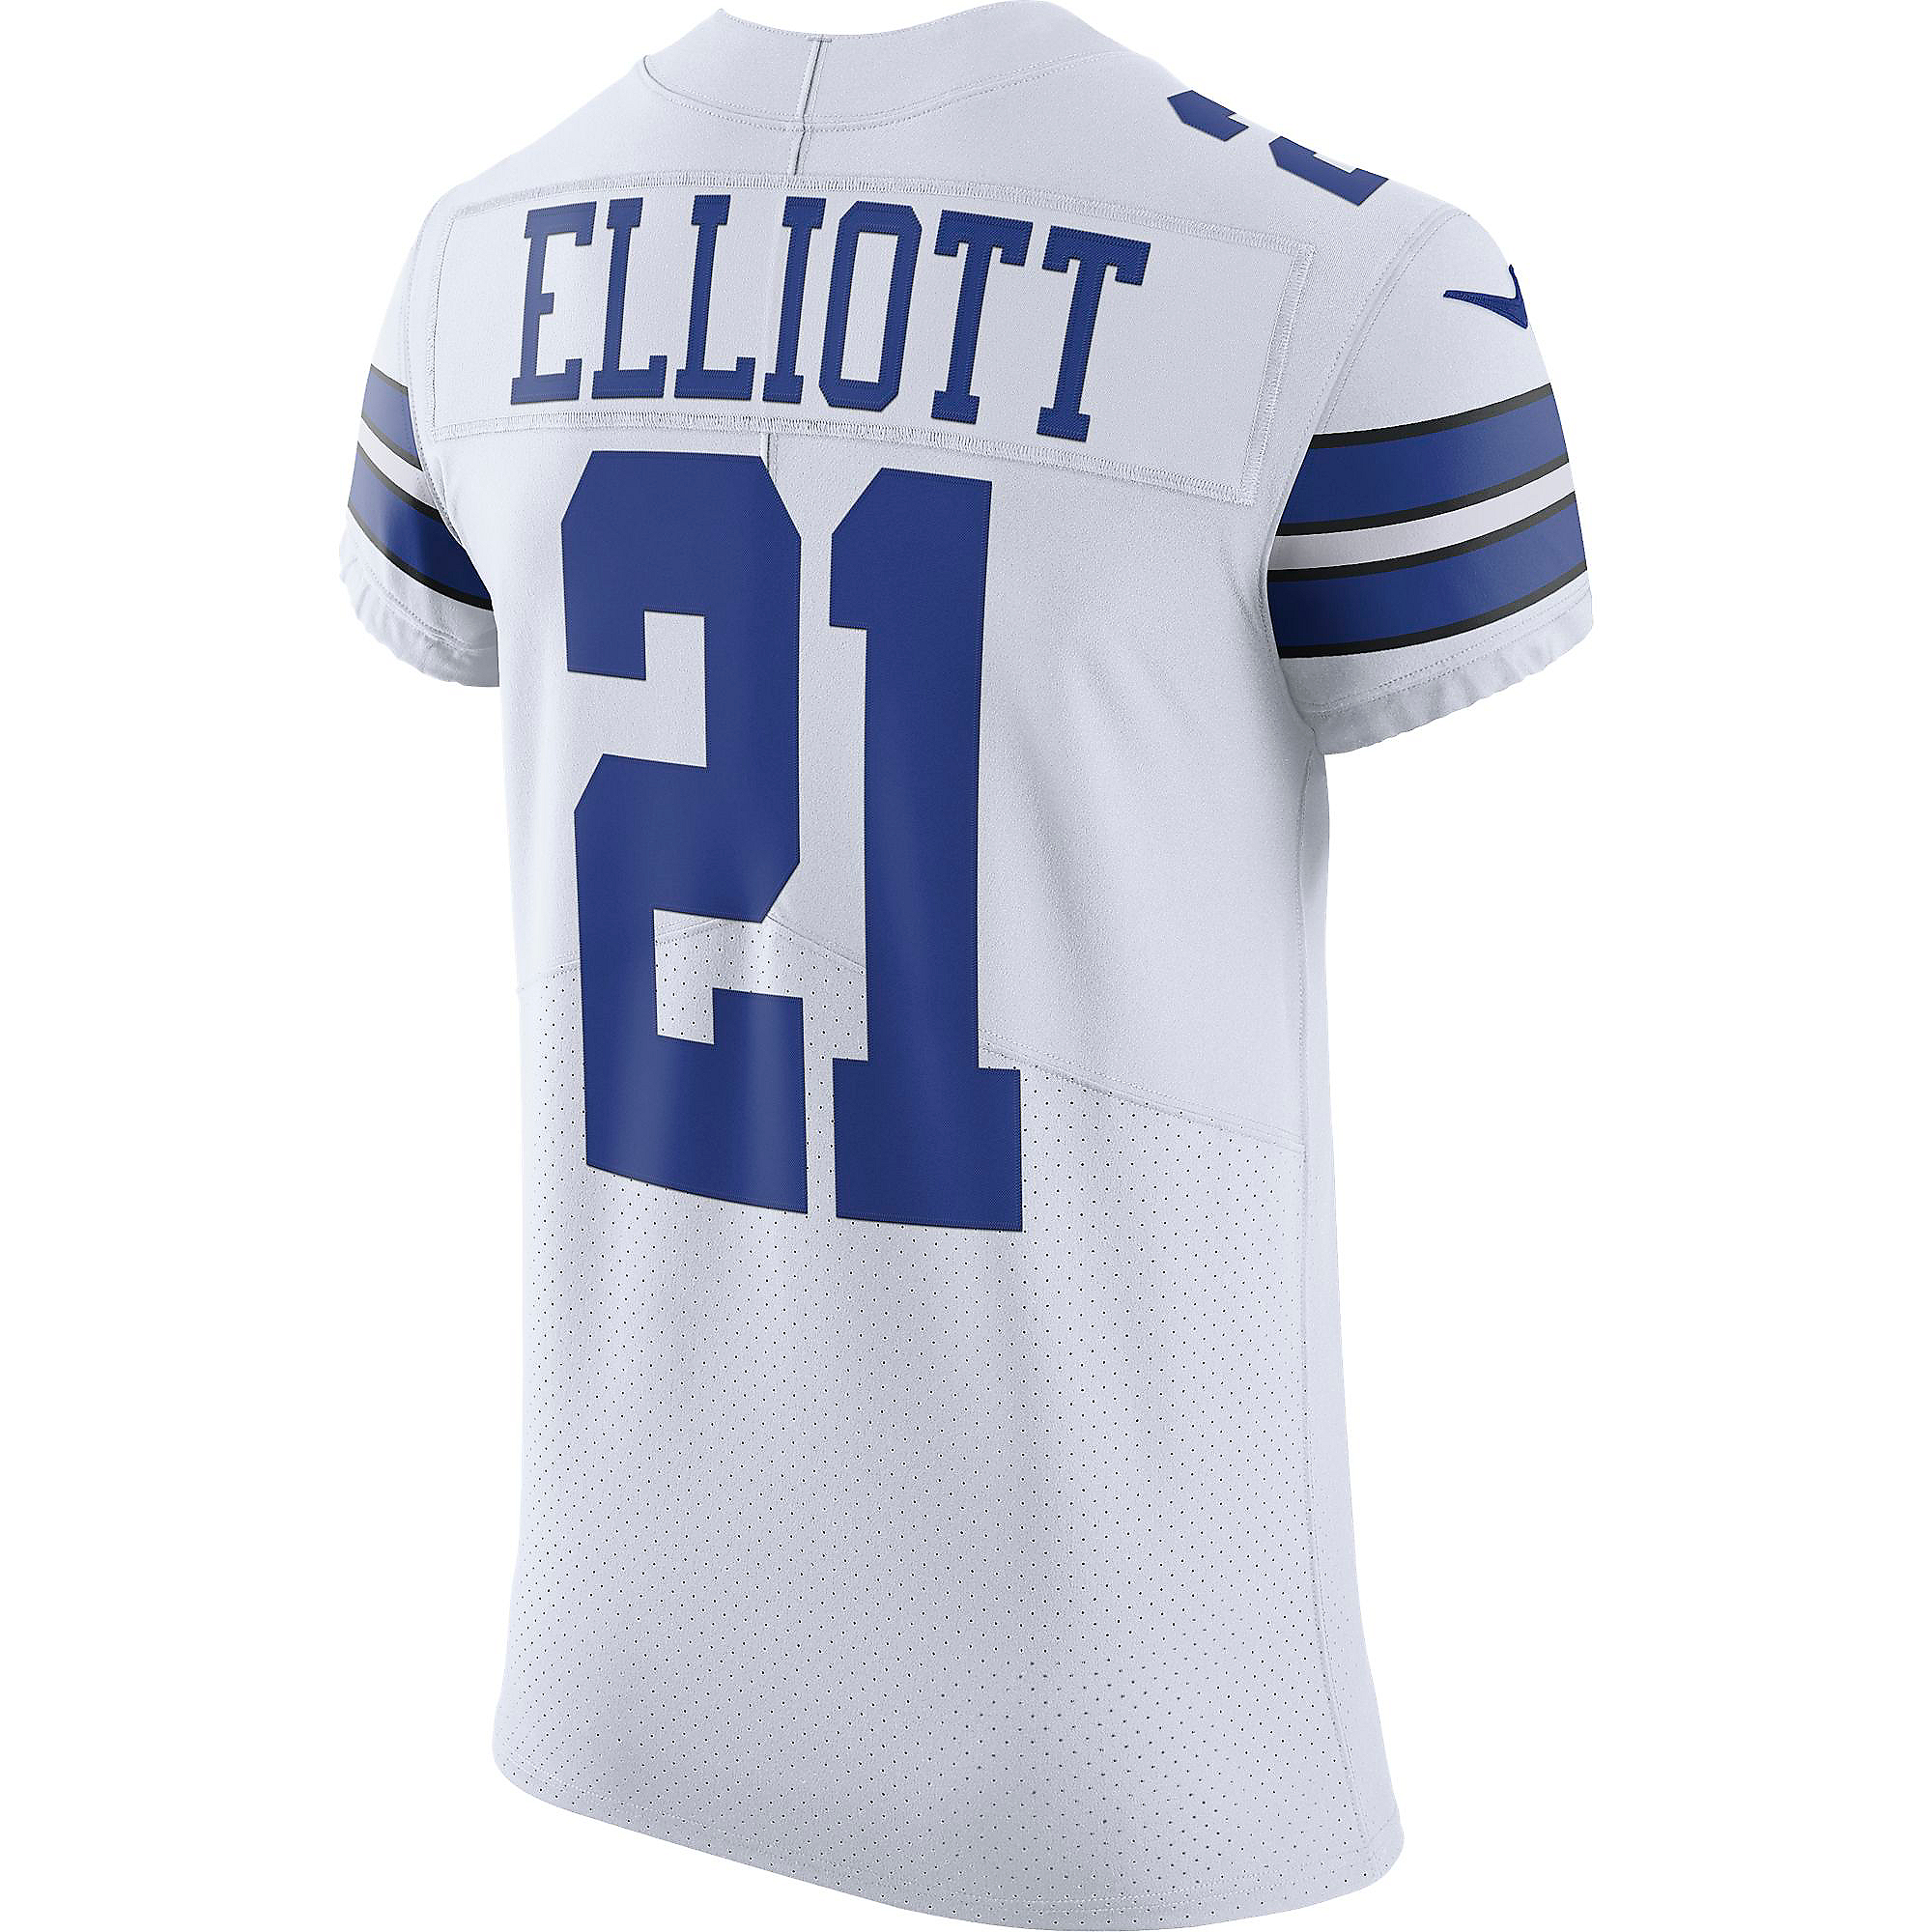 Dallas Cowboys Ezekiel Elliott #21 Nike Vapor Untouchable White Elite Authentic Jersey